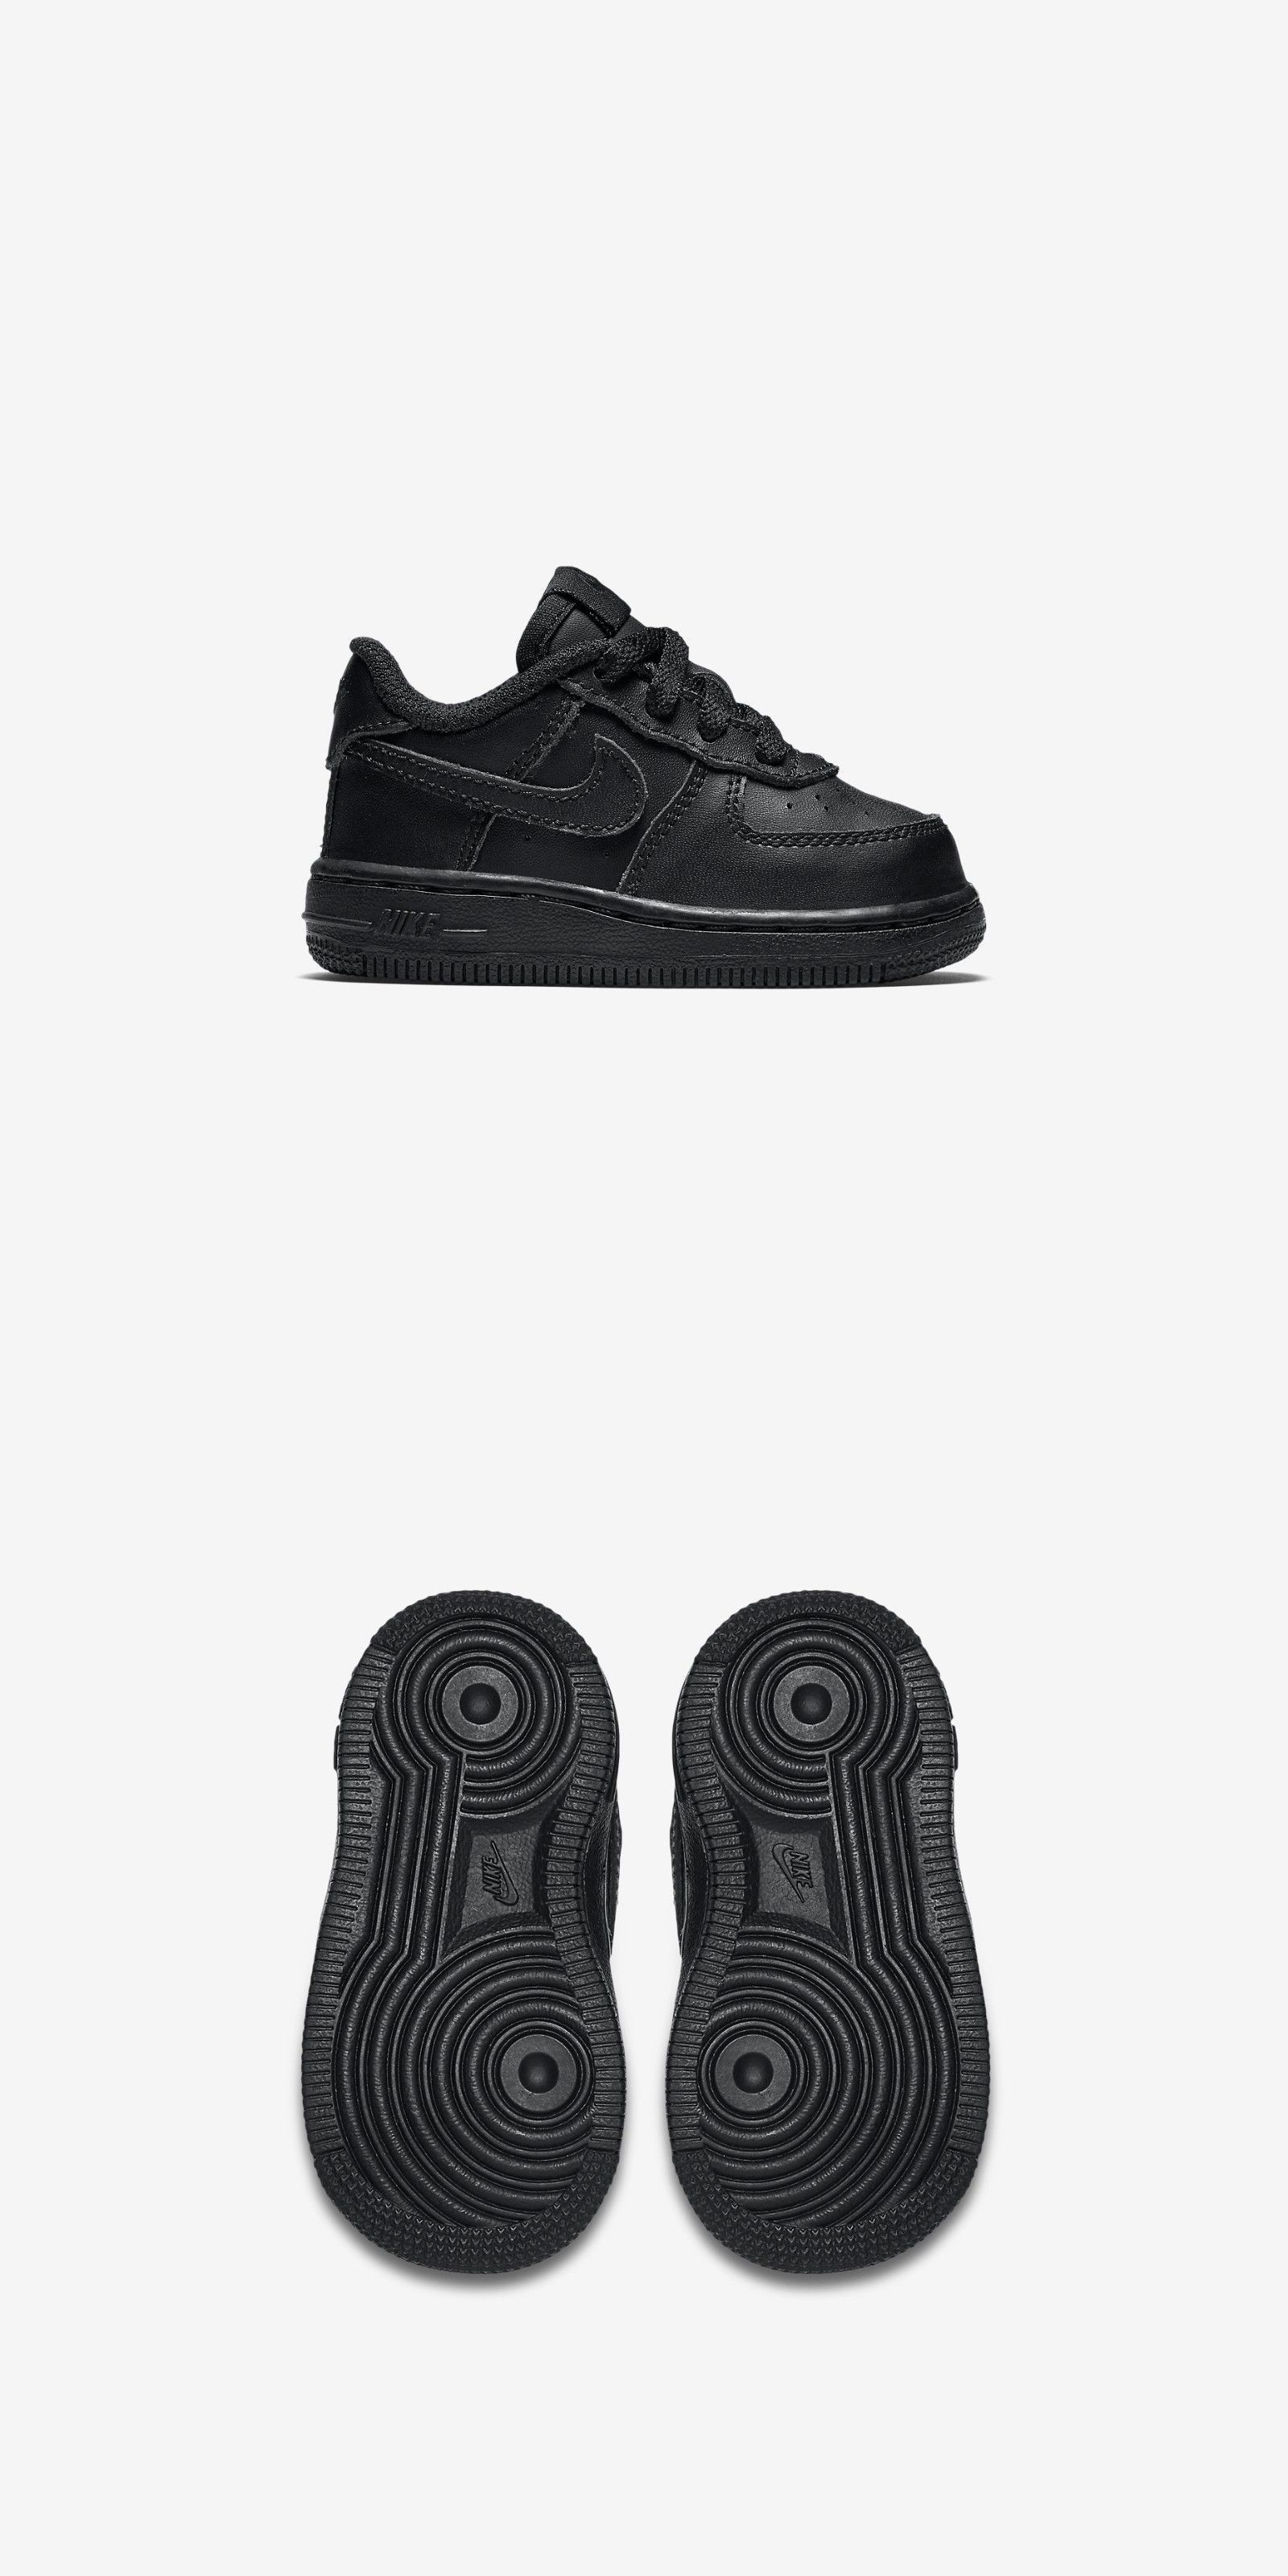 size 40 60861 d79c8 Baby Shoes 147285  New Nike Baby Nike Air Force 1 Low Toddlers Shoes  (314194-009) Black Black -  BUY IT NOW ONLY   35.99 on eBay!